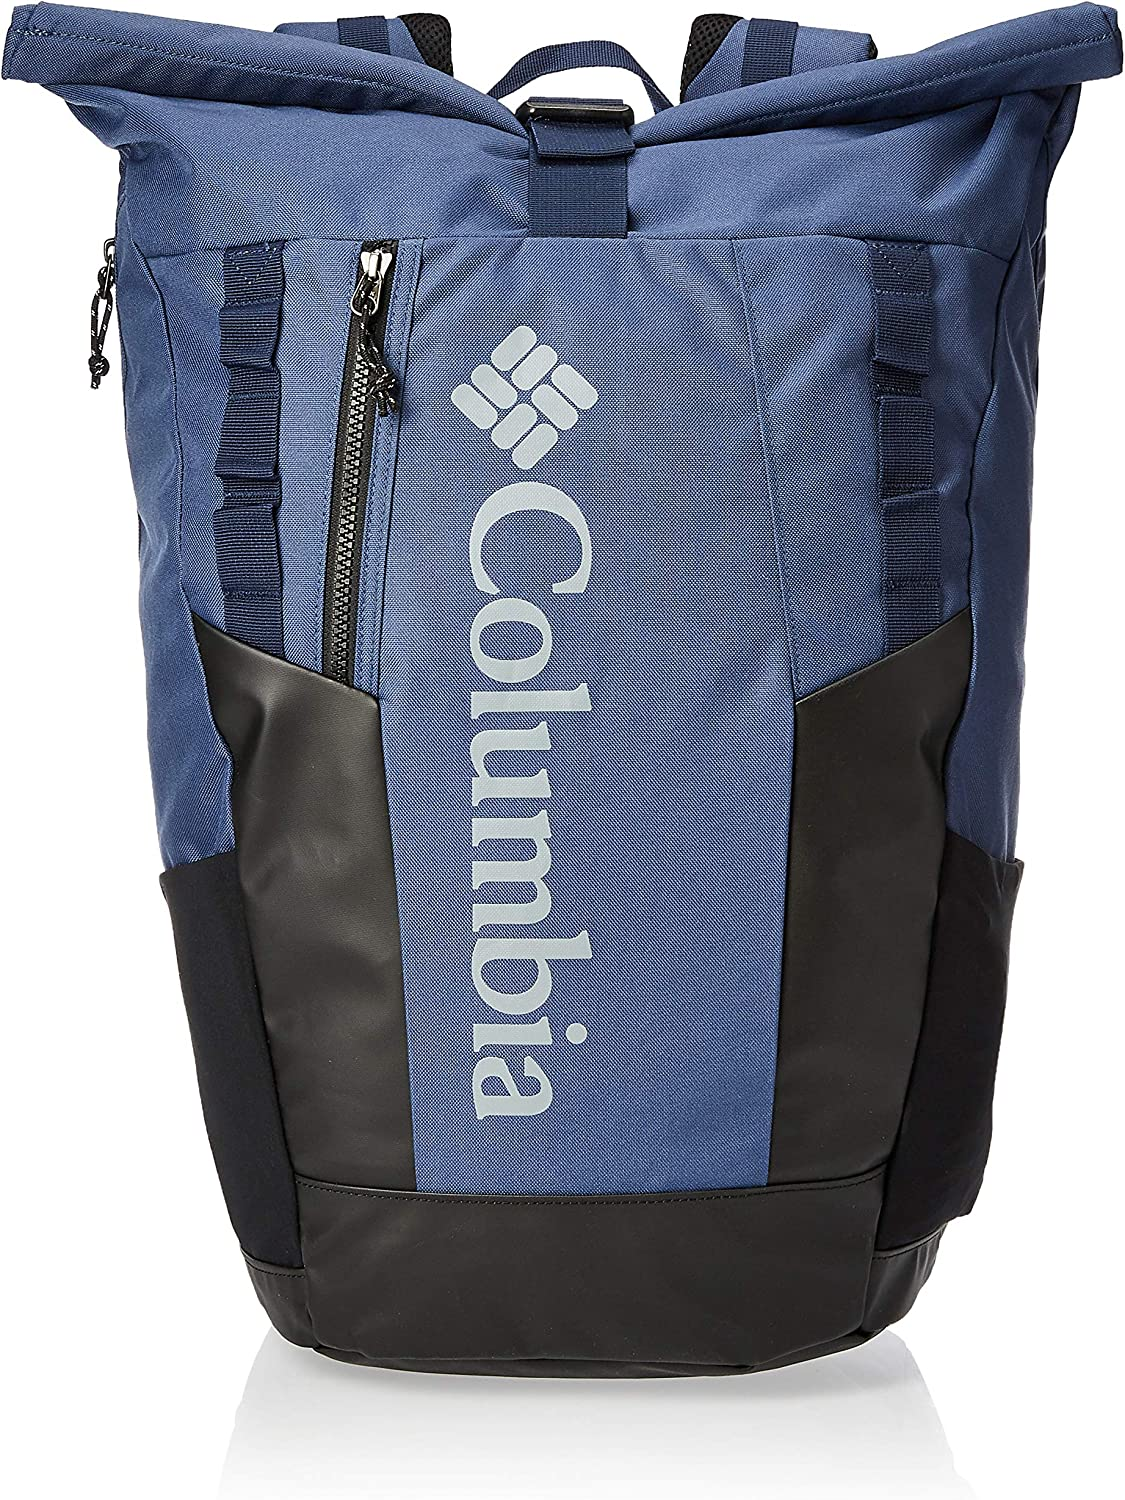 Convey 25L Rolltop Daypack, Laptop Backpack